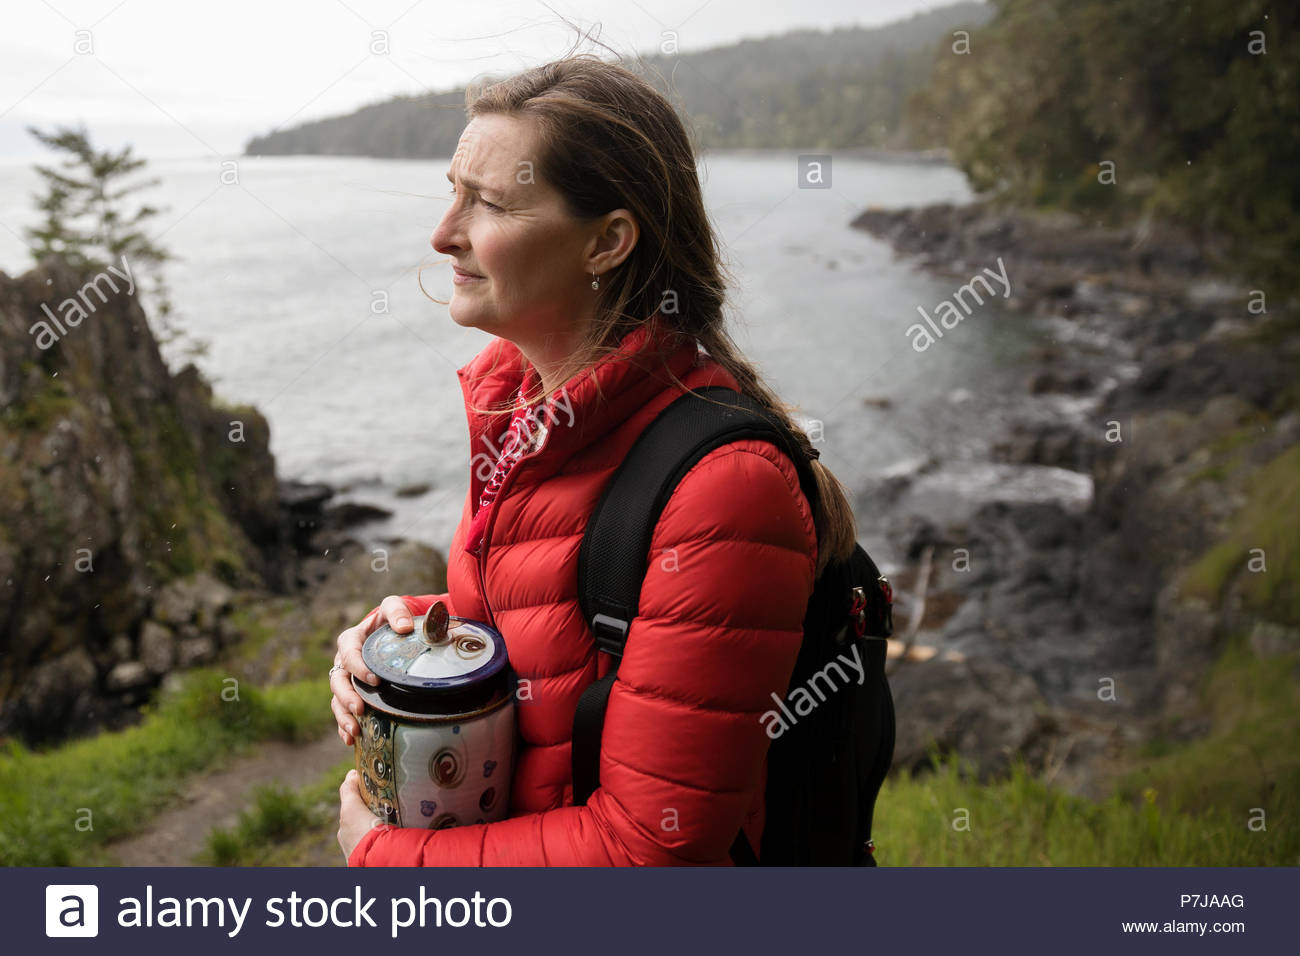 Woman with urn spreading ashes on cliff overlooking ocean - Stock Image